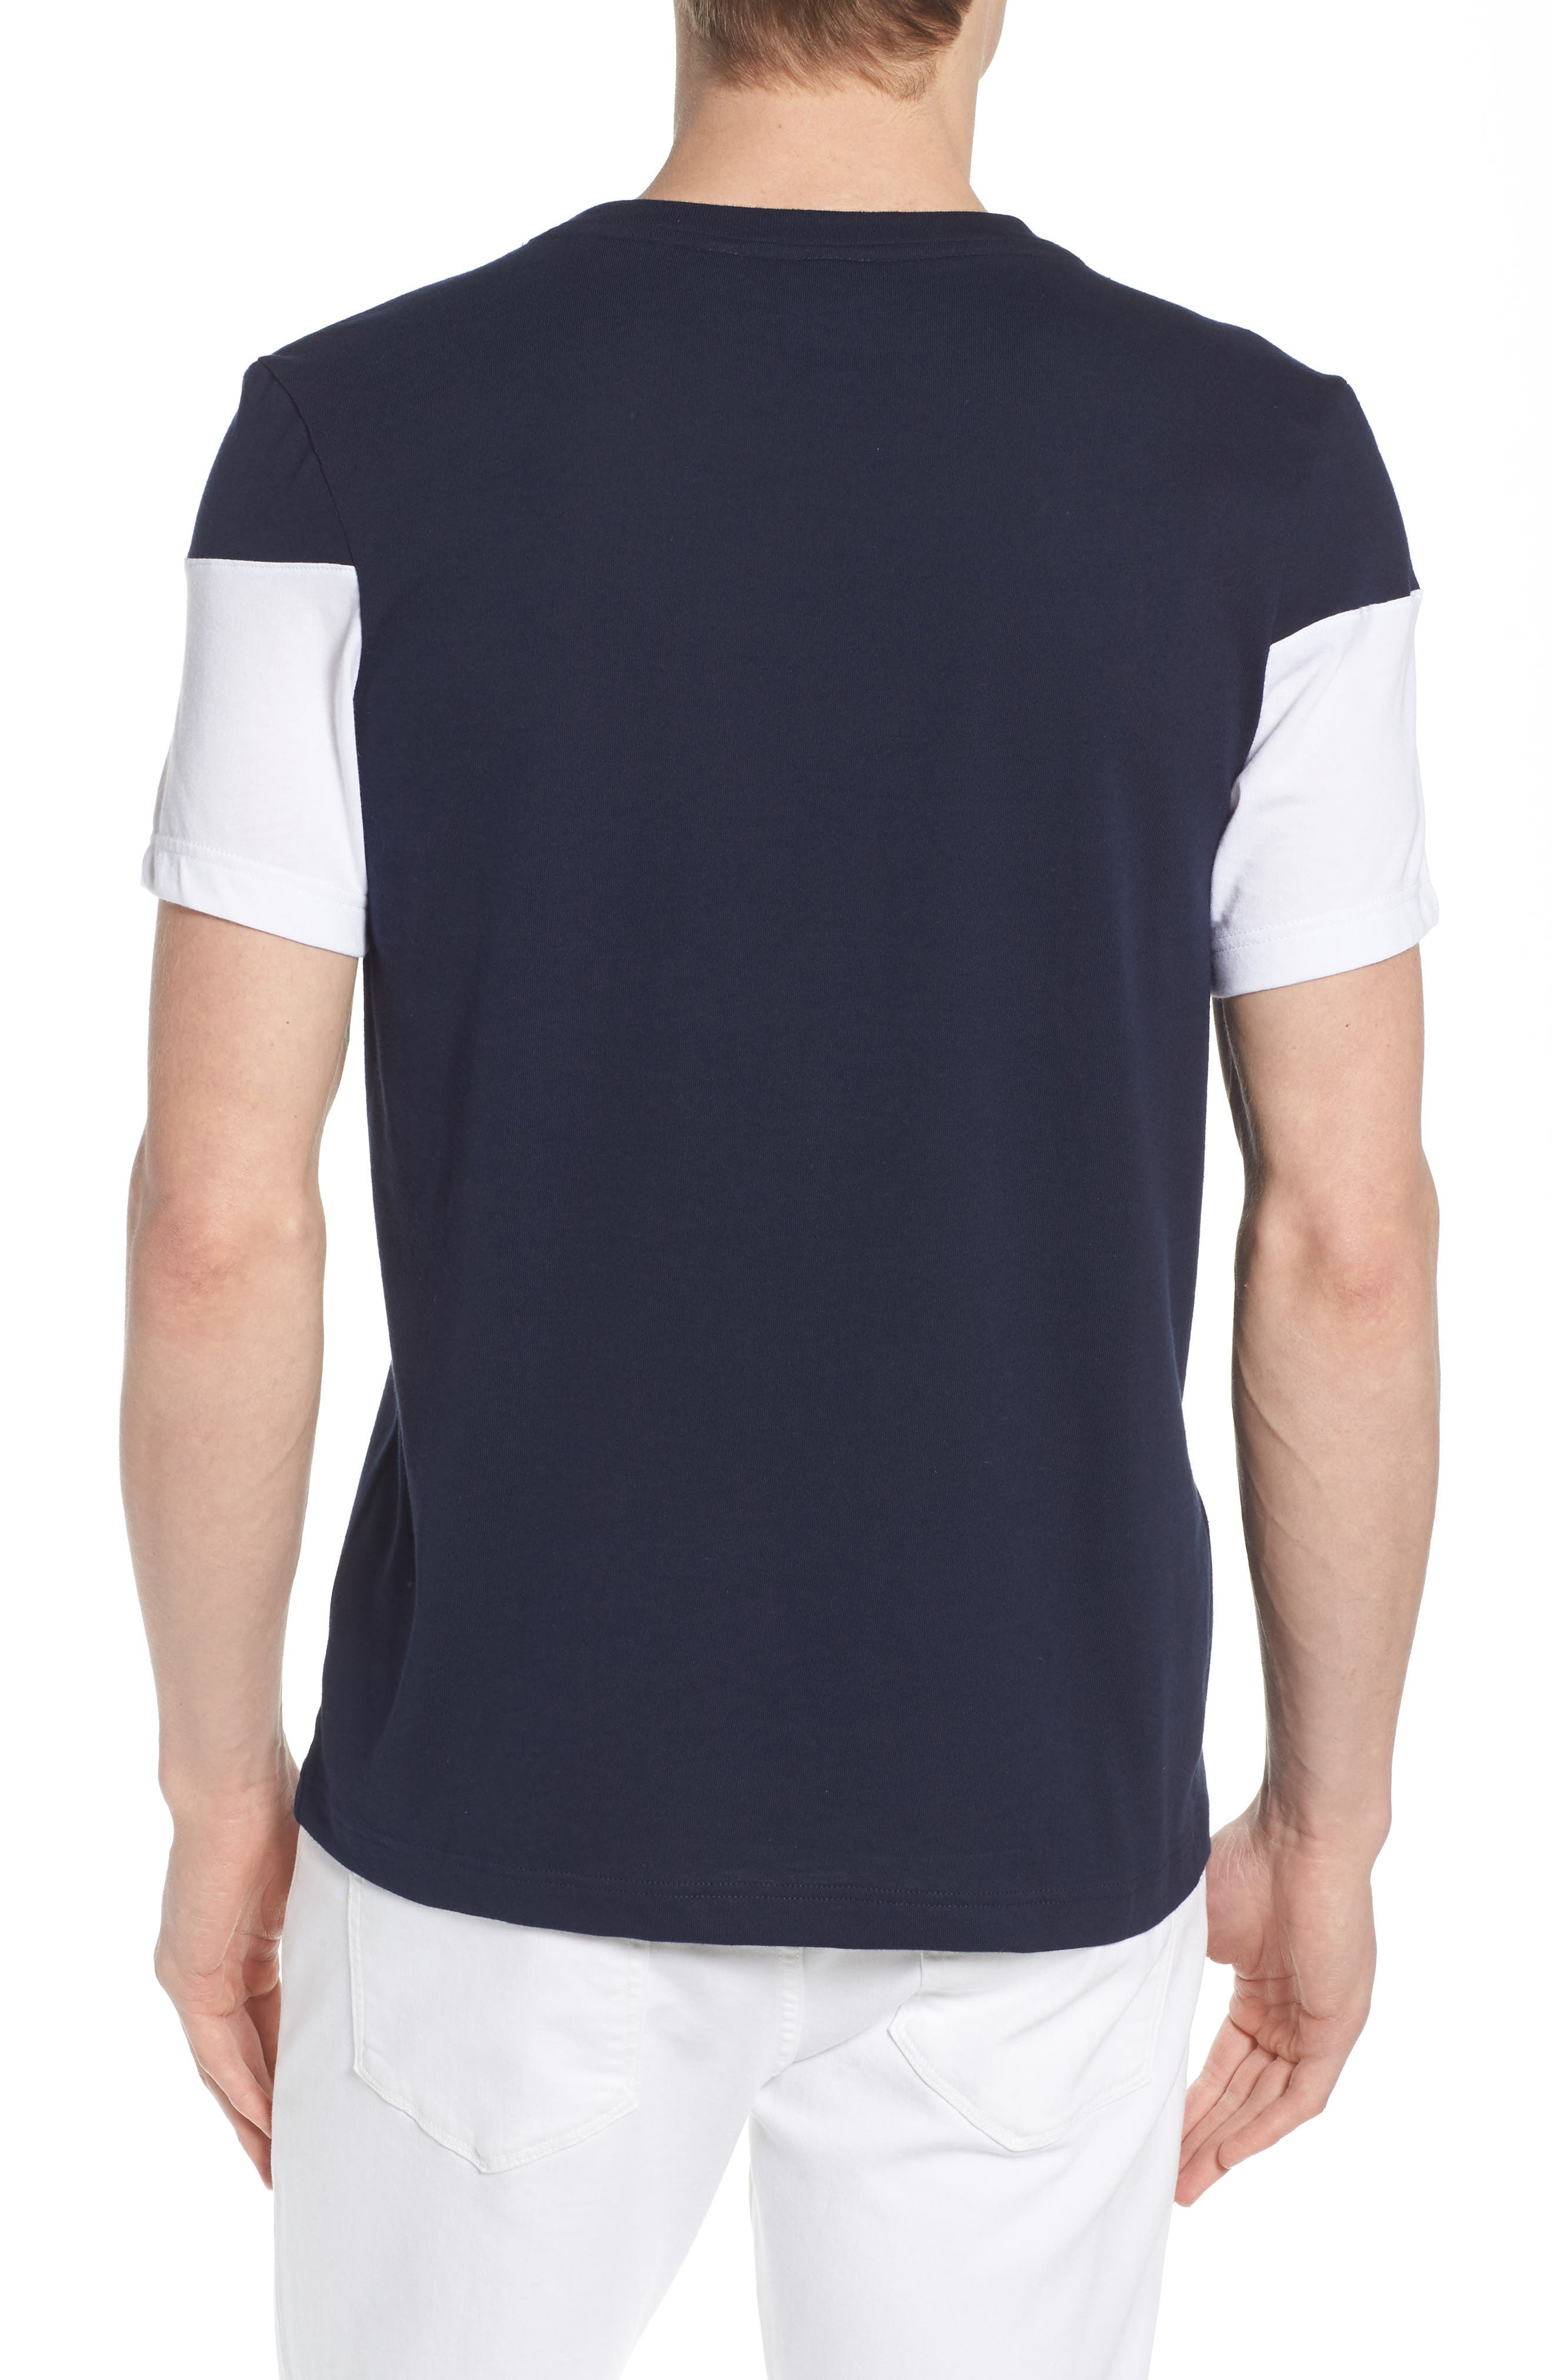 Tennis Anyone Tech Jersey T-Shirt,                             Alternate thumbnail 2, color,                             Navy Blue/ White